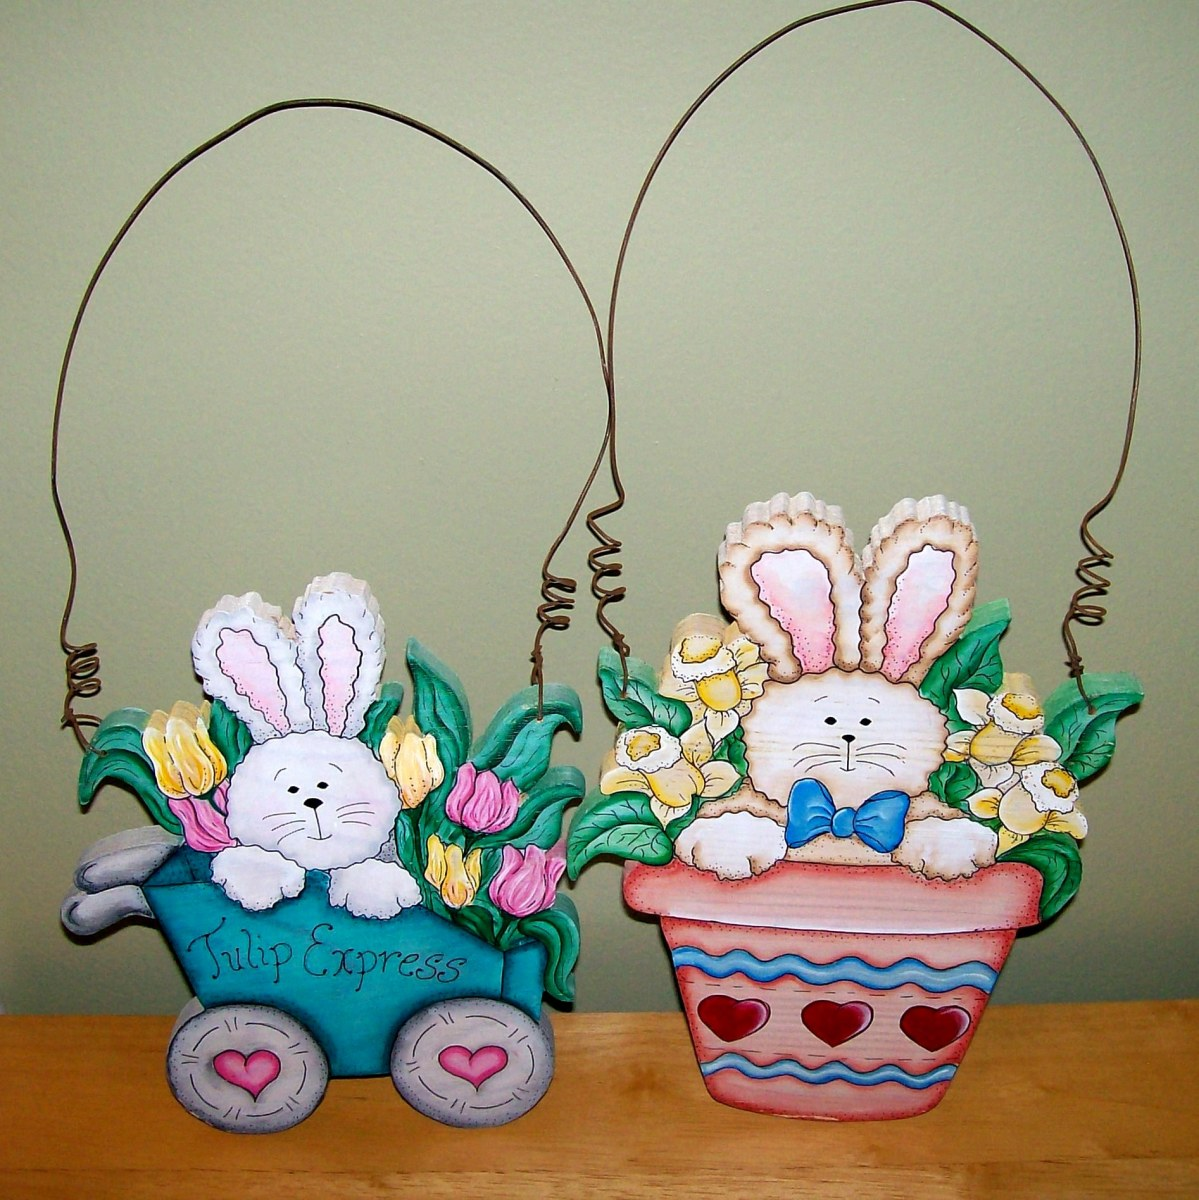 More adorable Easter decorations painted by Patty Sypek